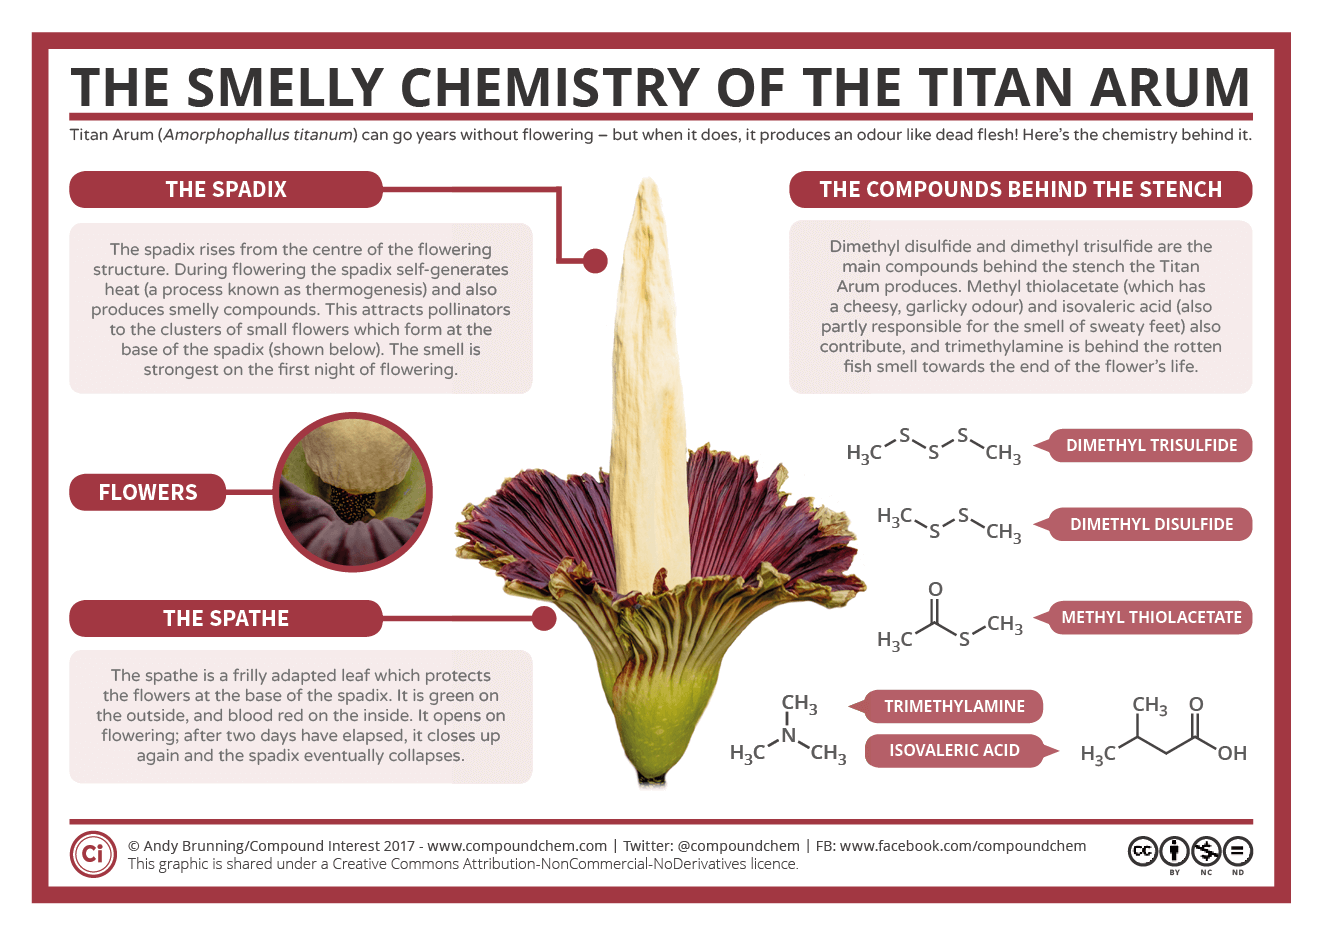 Corpse flower diagram product wiring diagrams the smelly chemistry of the titan arum corpse flower compound rh compoundchem com hibiscus diagram labeled diagram of a corpse flower izmirmasajfo